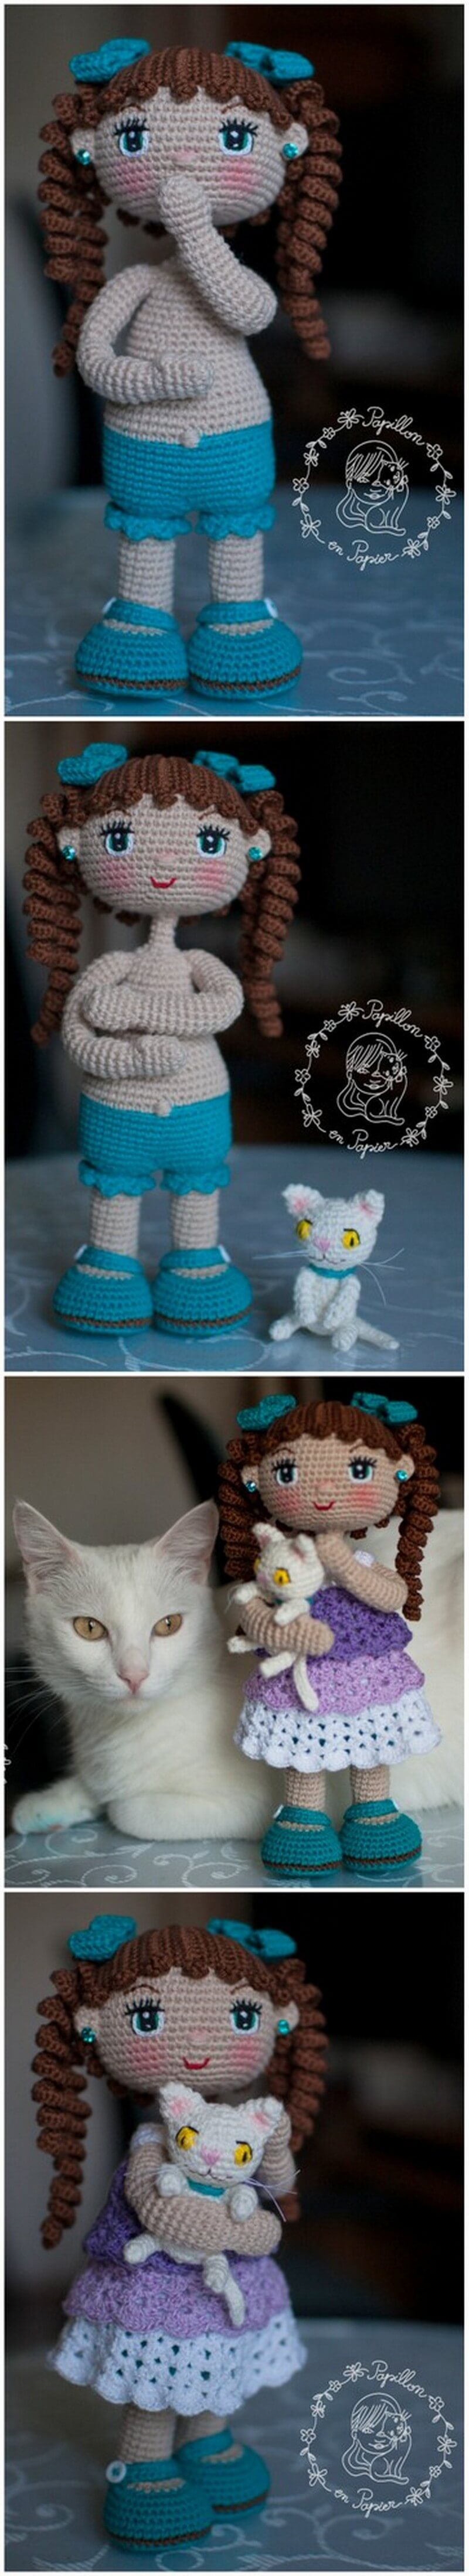 Crochet Amigurumi Doll Pattern (11)